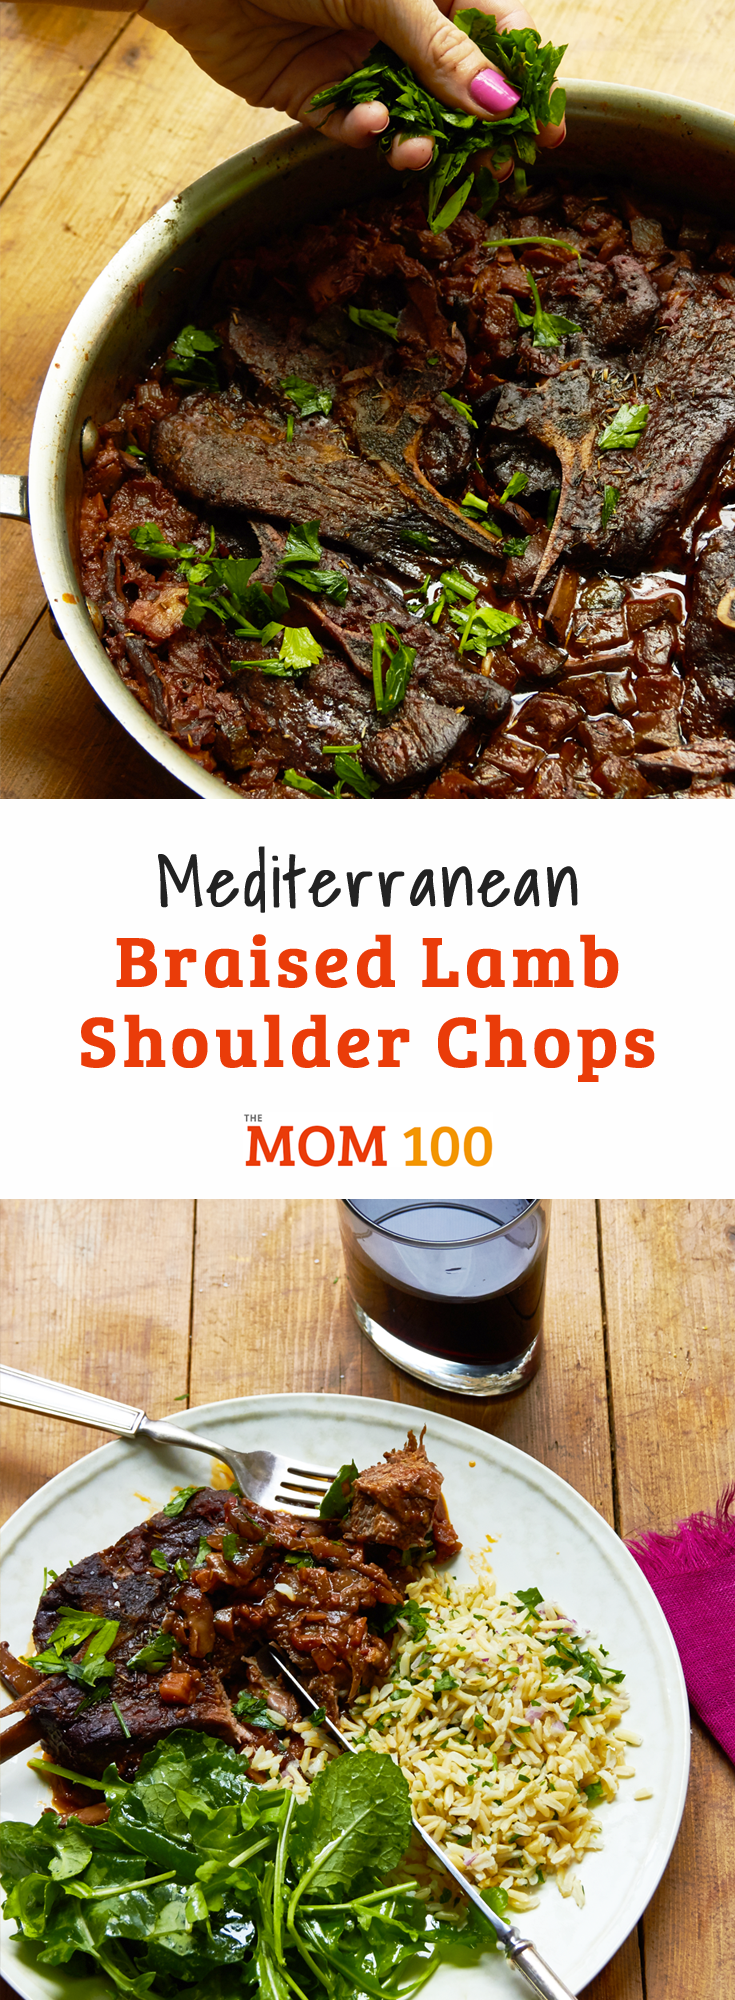 Mediterranean Braised Lamb Shoulder Chops: Tender rich meat is smothered with a rich sauce made with tomatoes and red wine, and studded with vegetables.